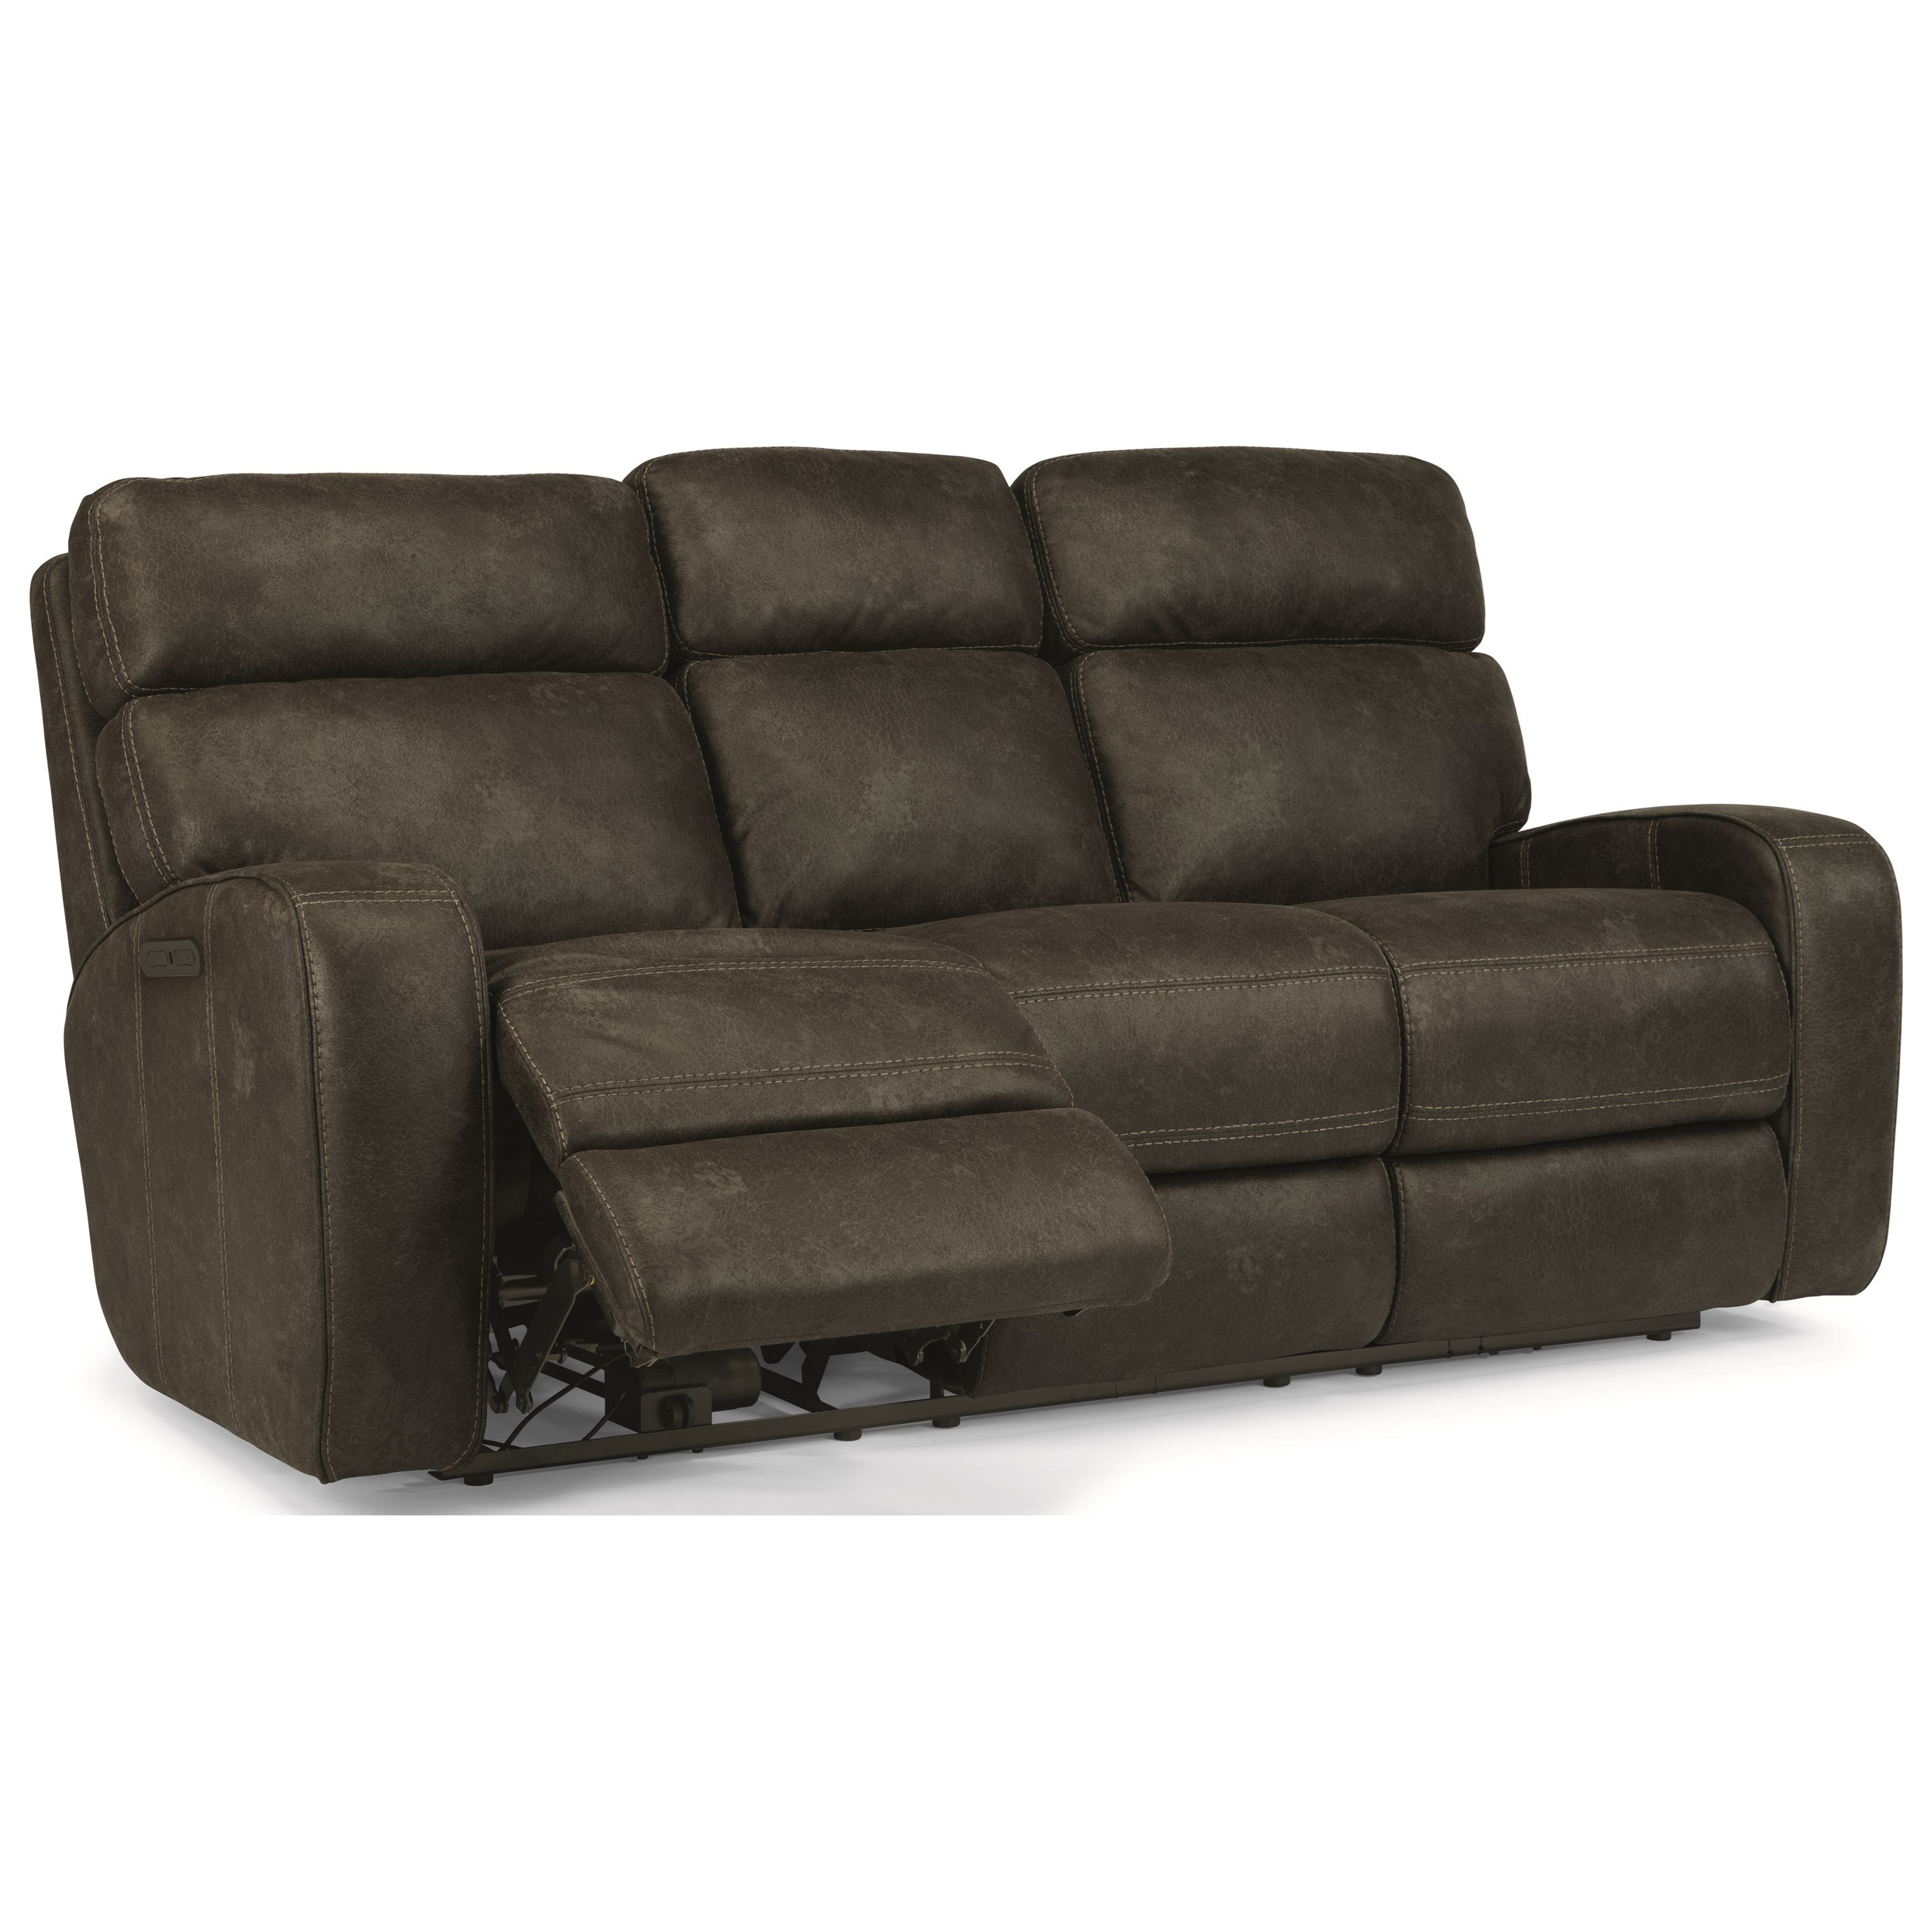 Flexsteel Latitudes-Tomkins Reclining Sofa - Item Number 1326-62PH 01  sc 1 st  Wayside Furniture : power reclining sofas and loveseats - islam-shia.org